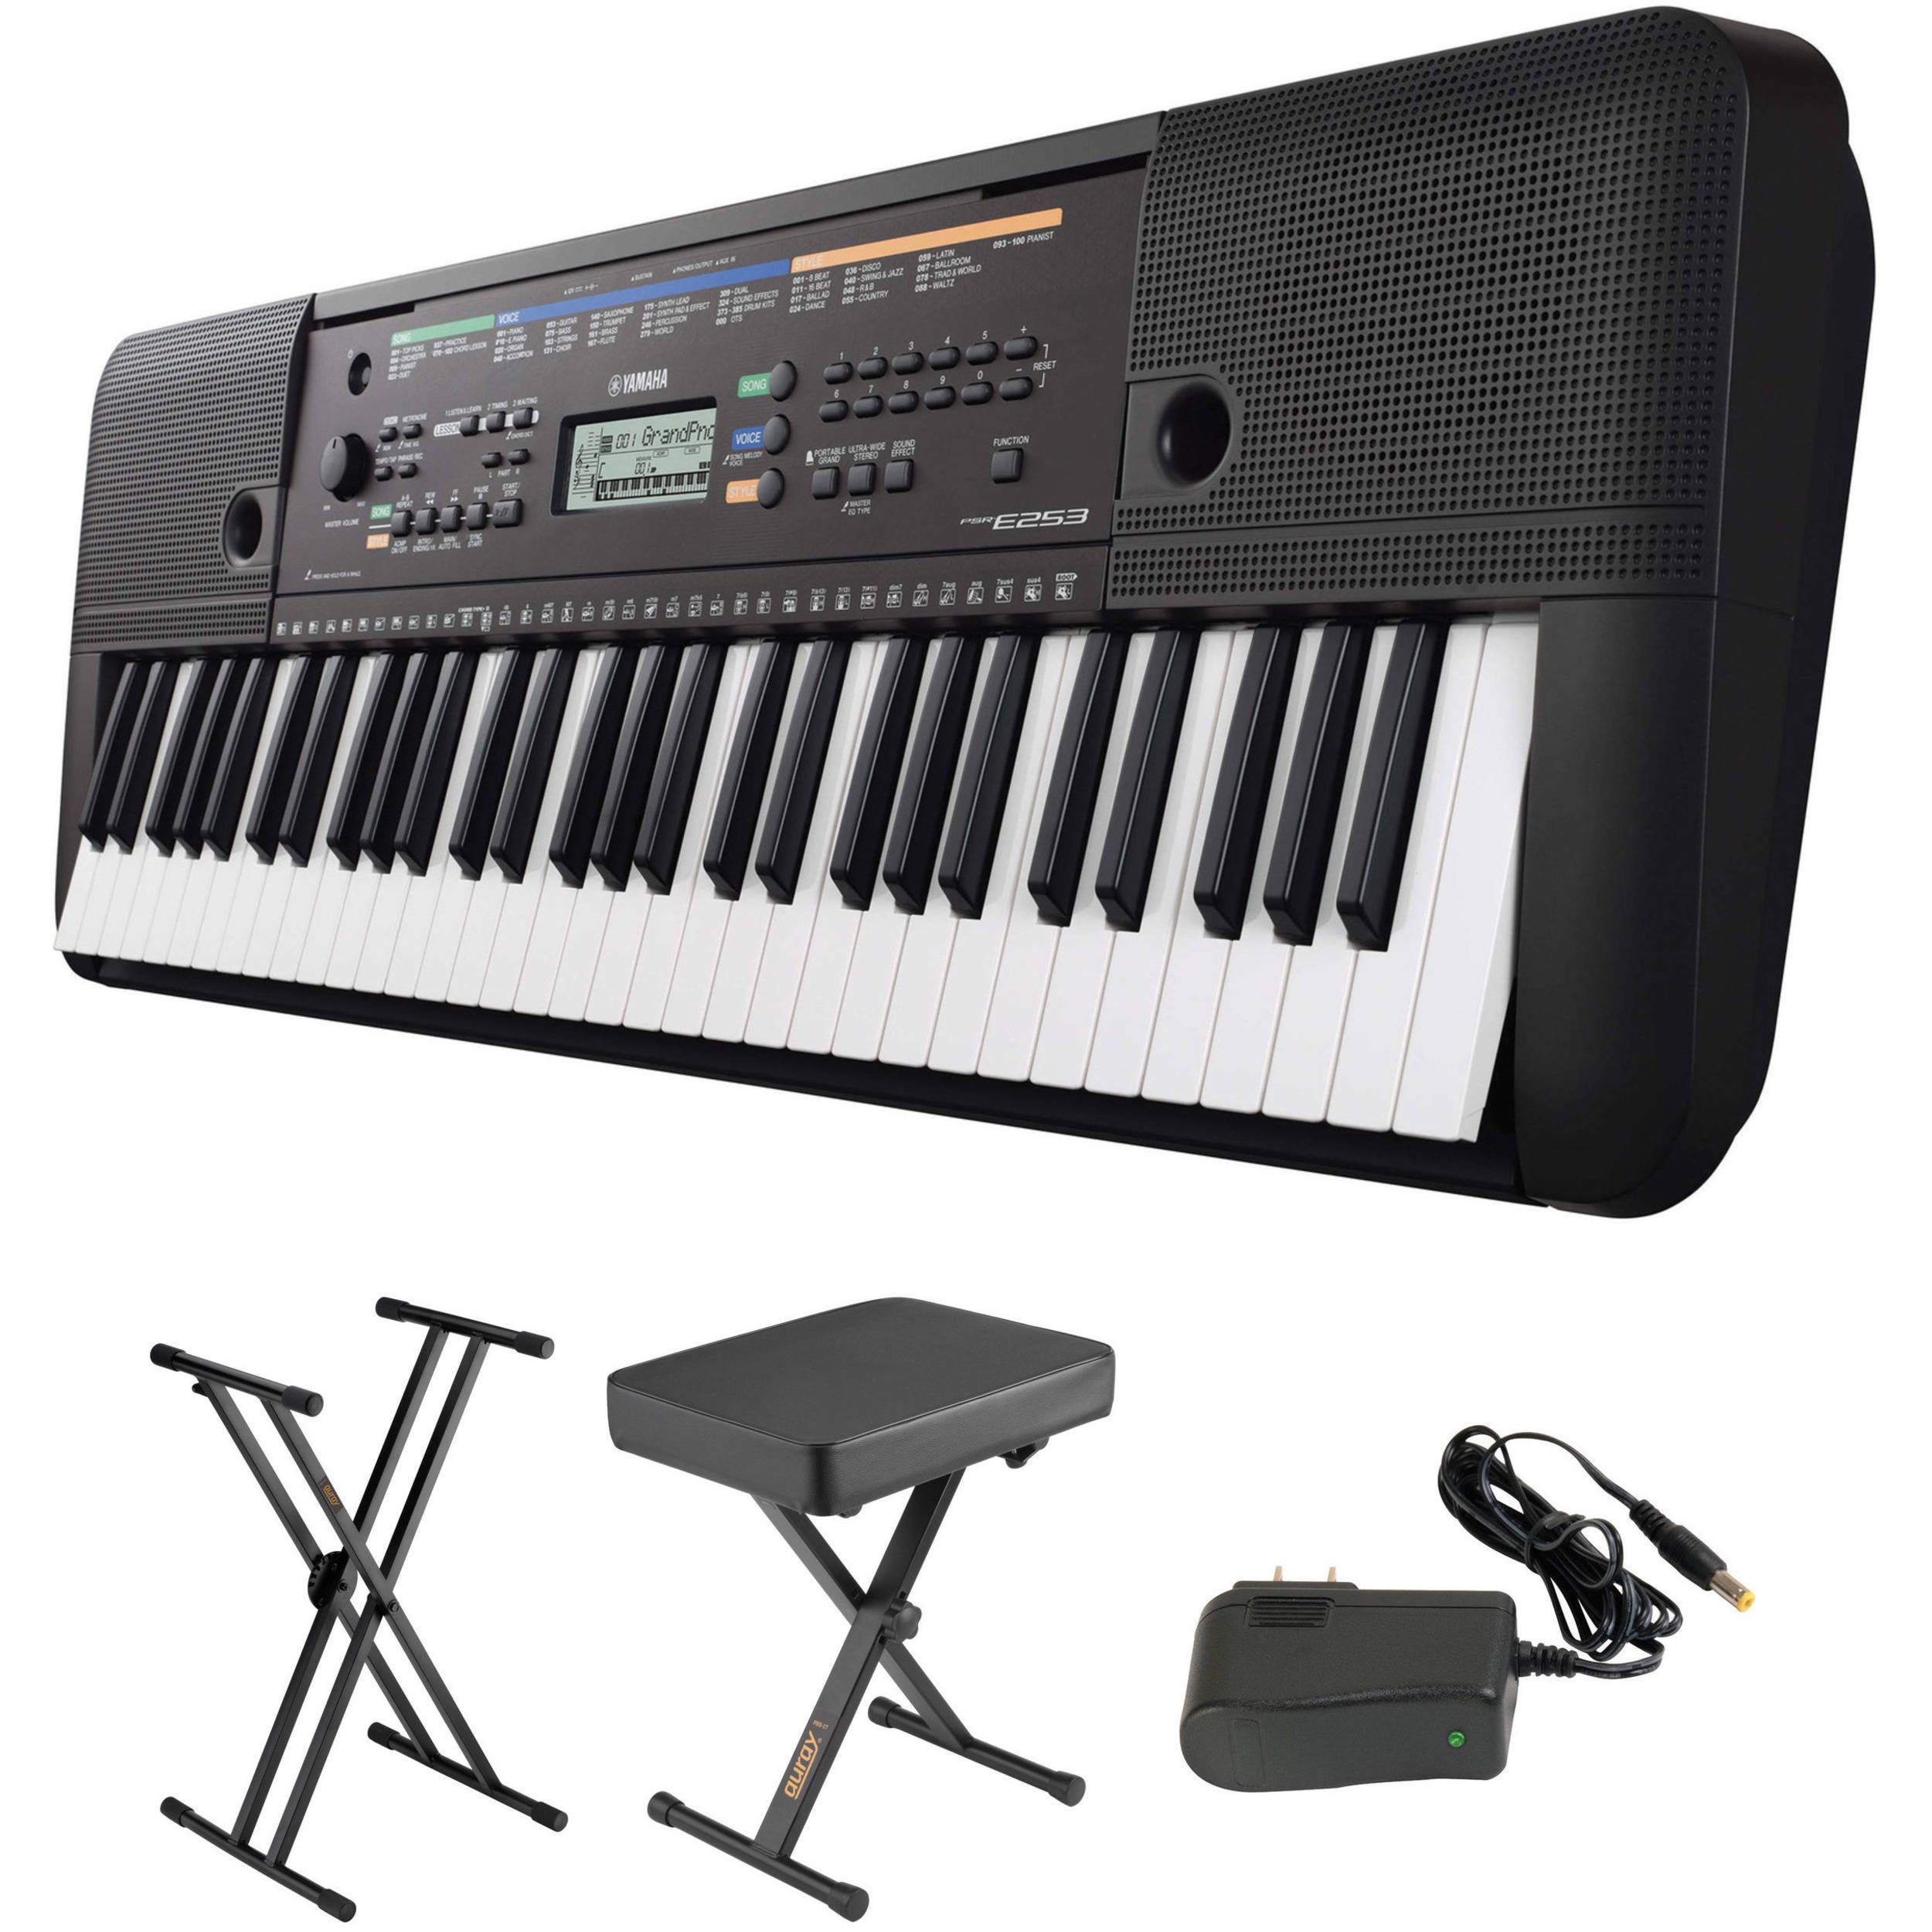 Yamaha Psr E253 Portable Keyboard Kit With Stand Bench And Power Supply